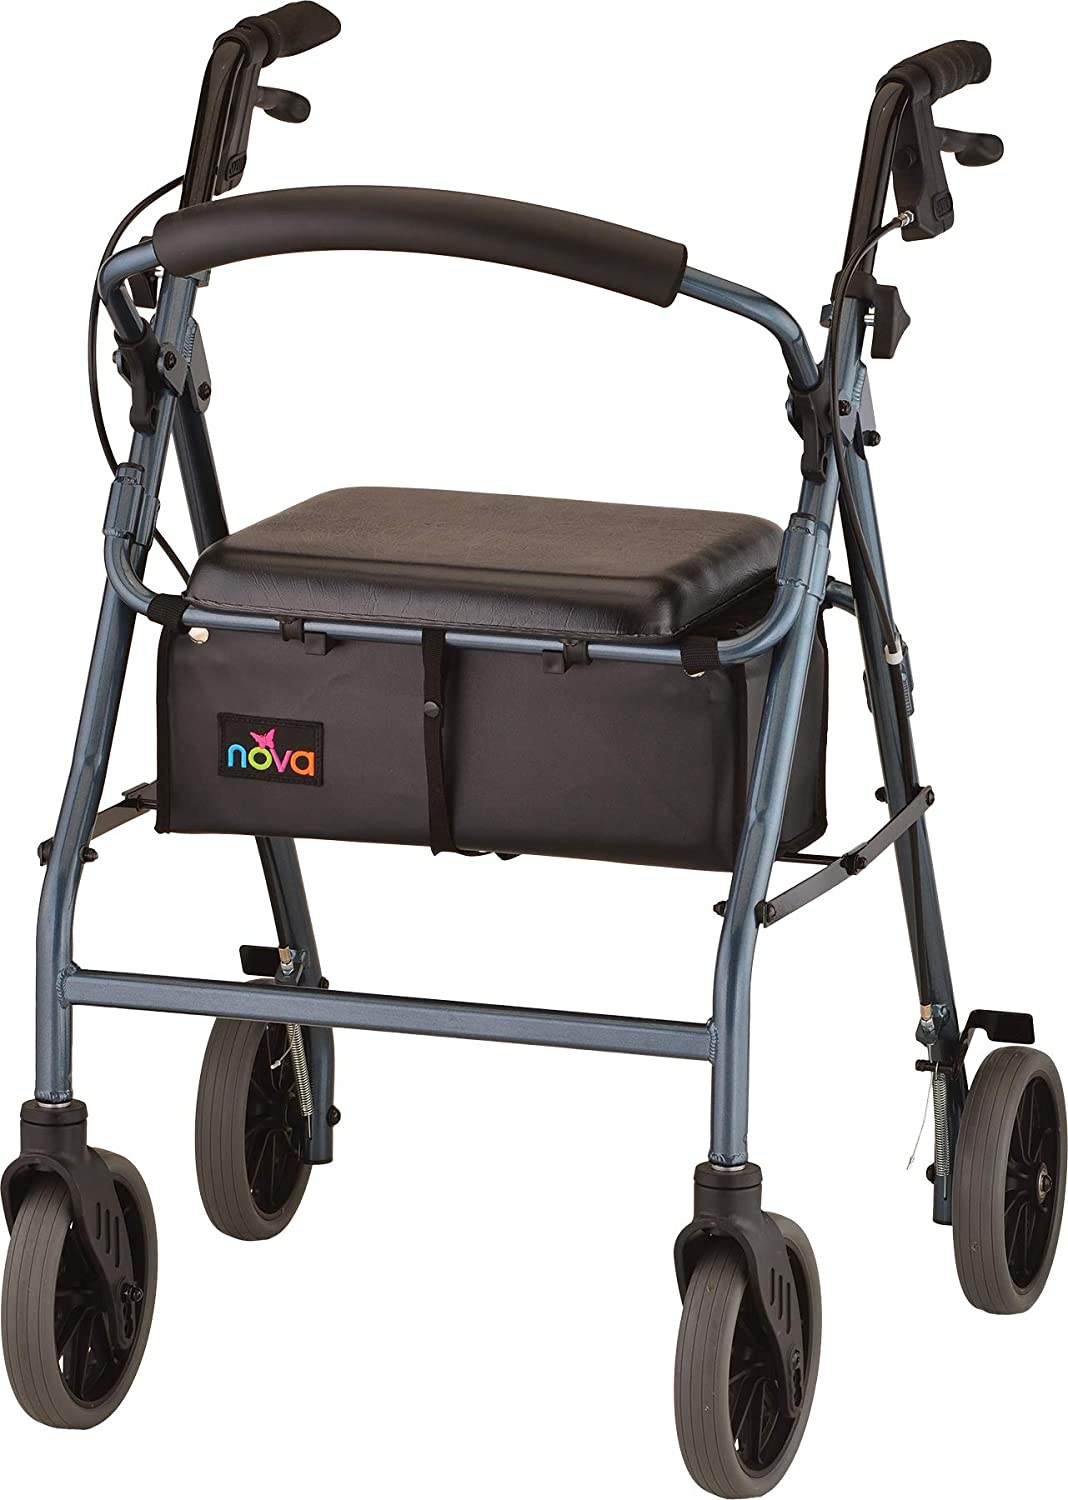 NOVA Medical Products Zoom Rollator Walker with 24